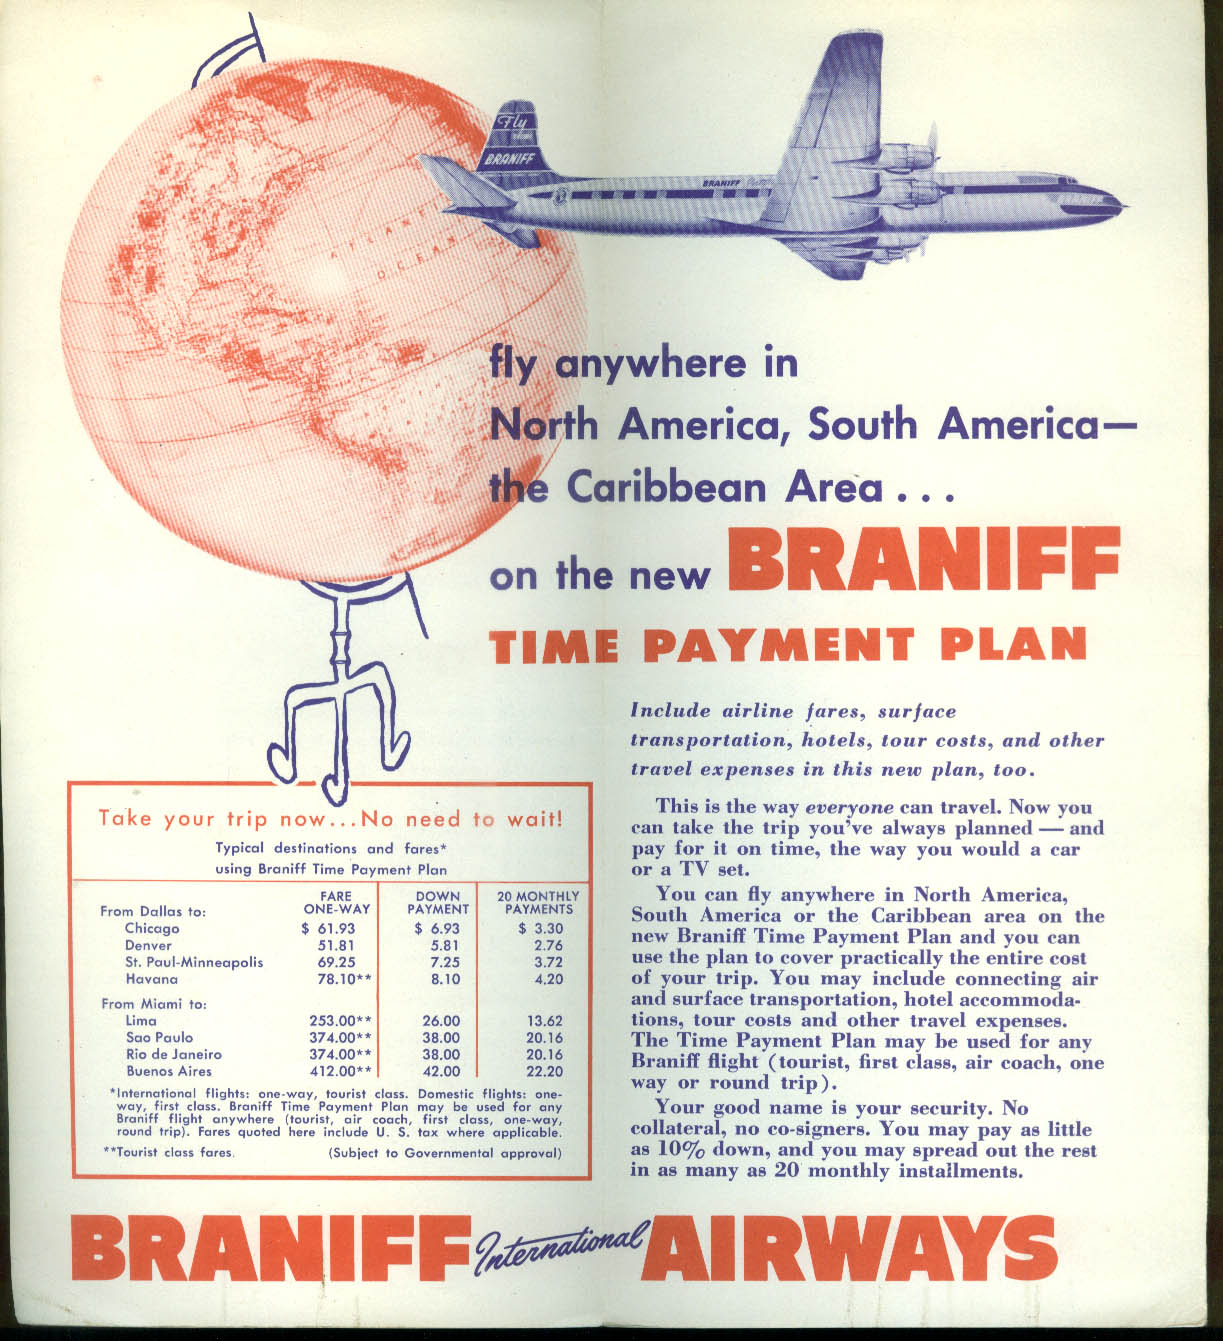 Braniff International Airways Time Payment Plan airline folder 1950s